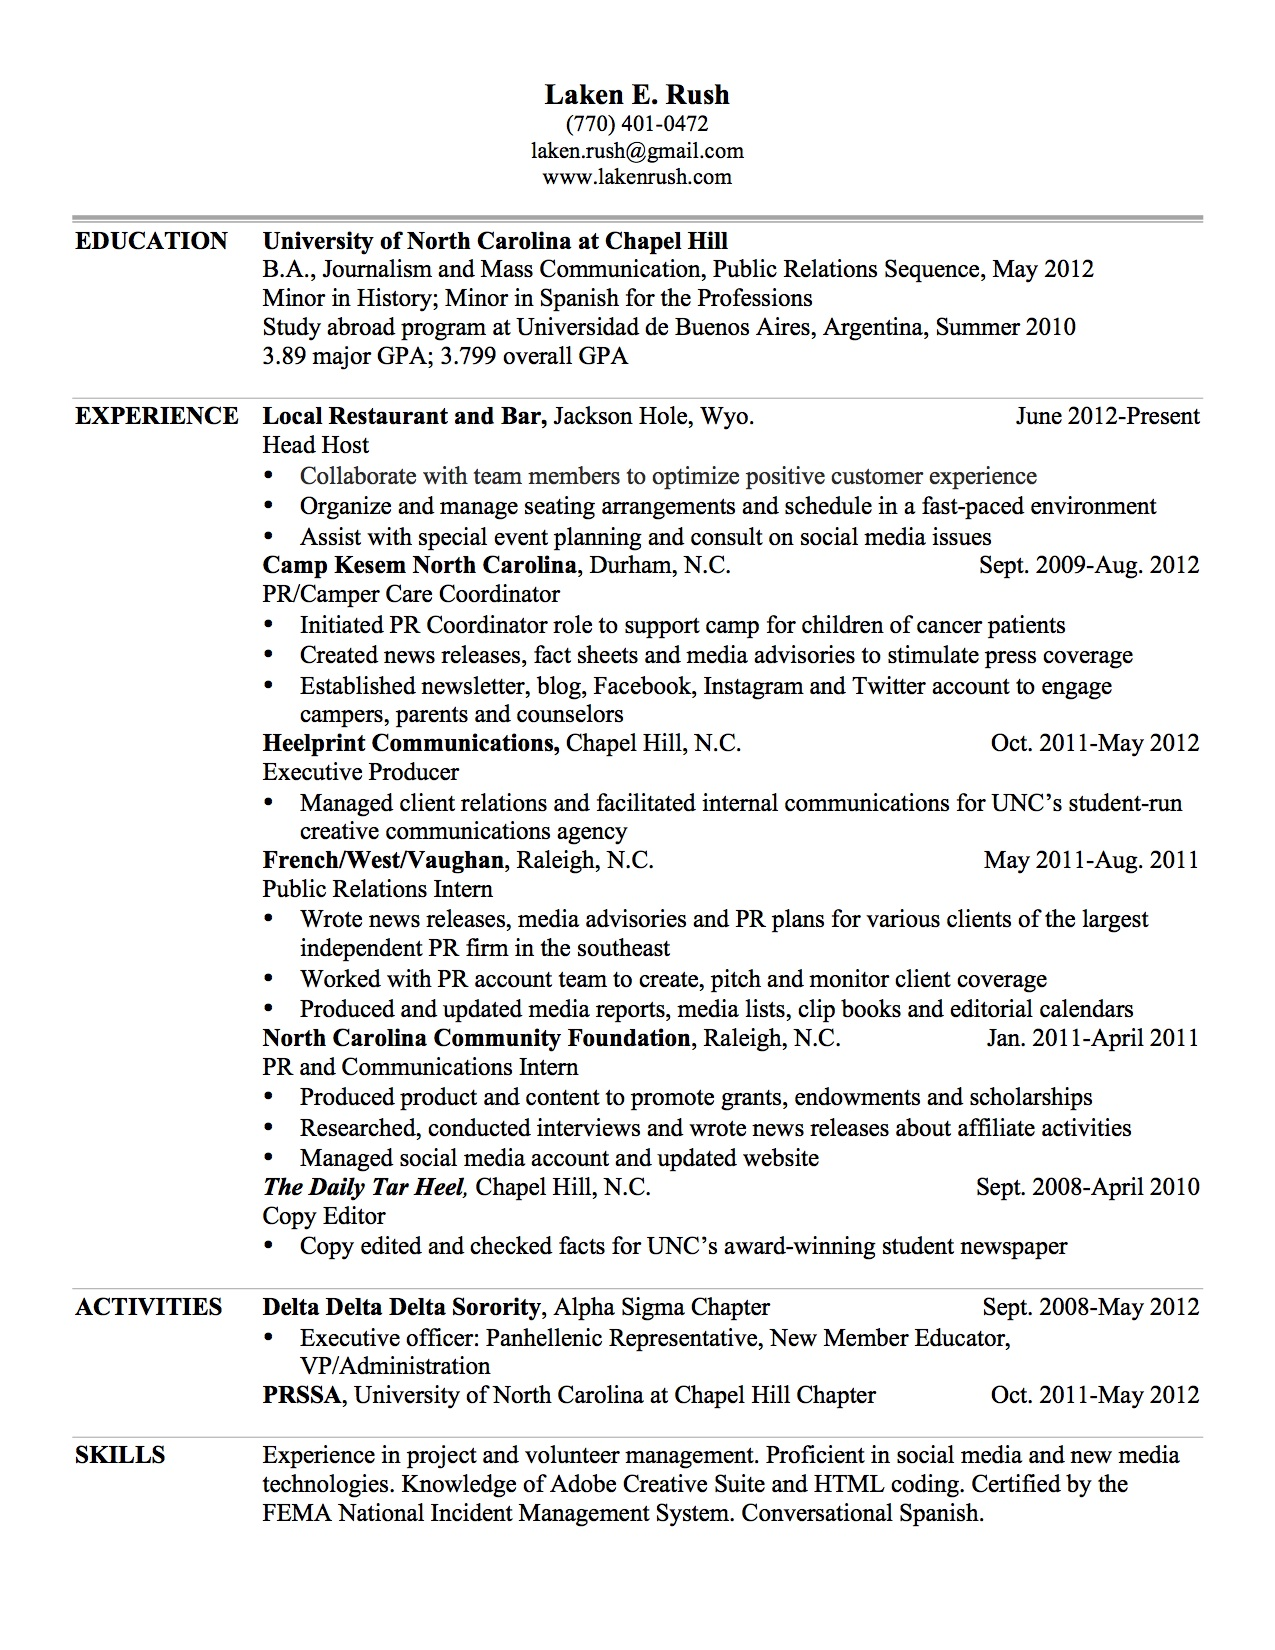 Web Resume 2013 Laken Rush